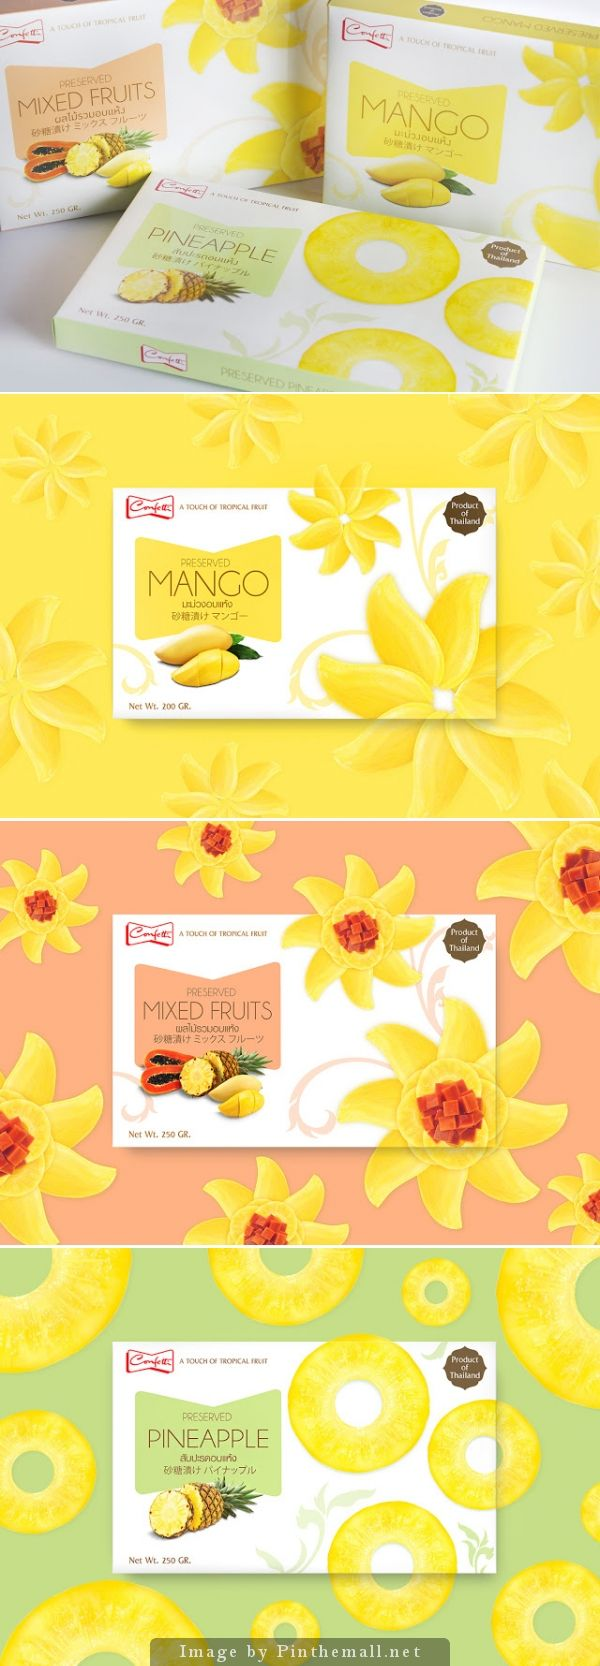 Confetti Dried Fruit Creative Agency: Prompt Design Executive Creative Director: Somchana Kangwarnjit , Prompt Design Design Director: Tiptida Treeratwattana, Prompt Design Designer: Honmaru & Mamew, Prompt Design Account Executive: Pimprae Boonmueng, Prompt Design Client: Sino-Pacific Trading (Thailand) Co., Ltd. Location: Thailand Project Type: Commercial Work